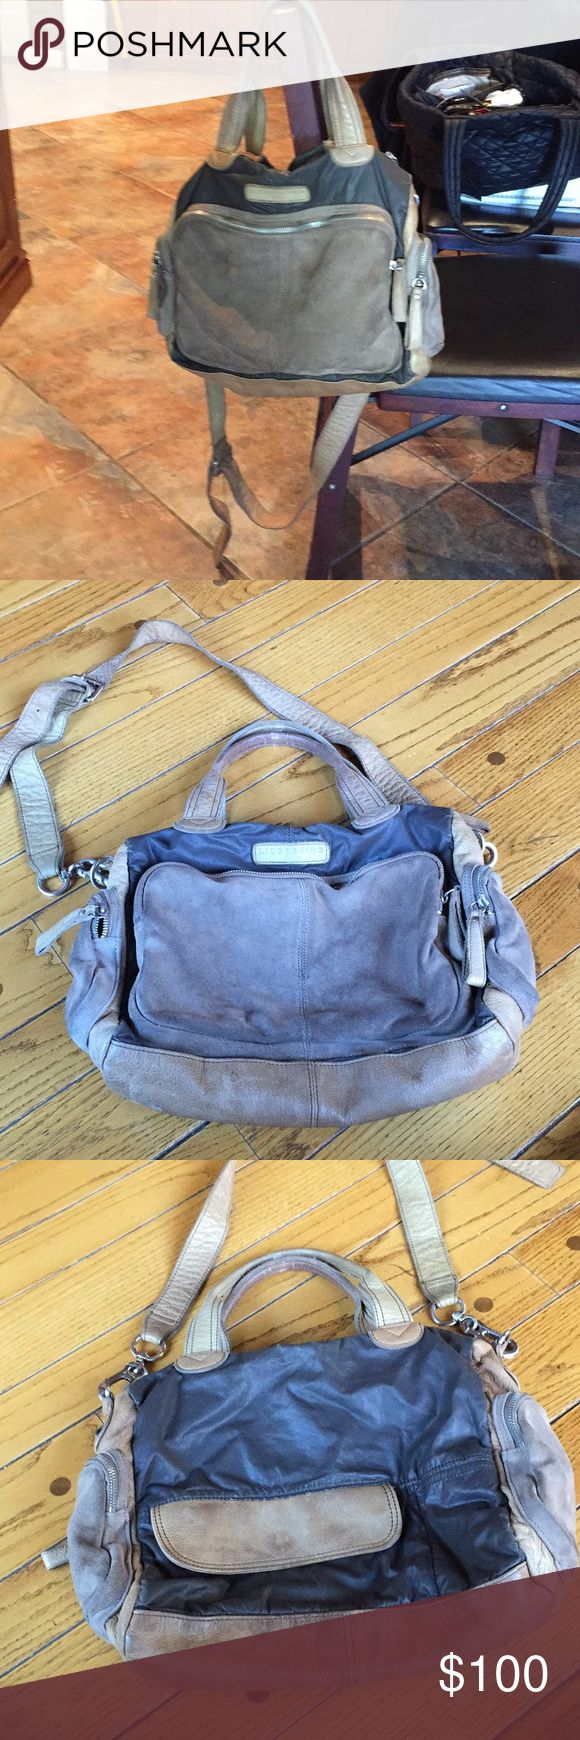 Liebeskind suede bag Charcoal gray and beige suede bag, many pockets inside and out, worn out and slightly stained but in general good condition! Will send more pics upon request! Liebeskind Bags Shoulder Bags